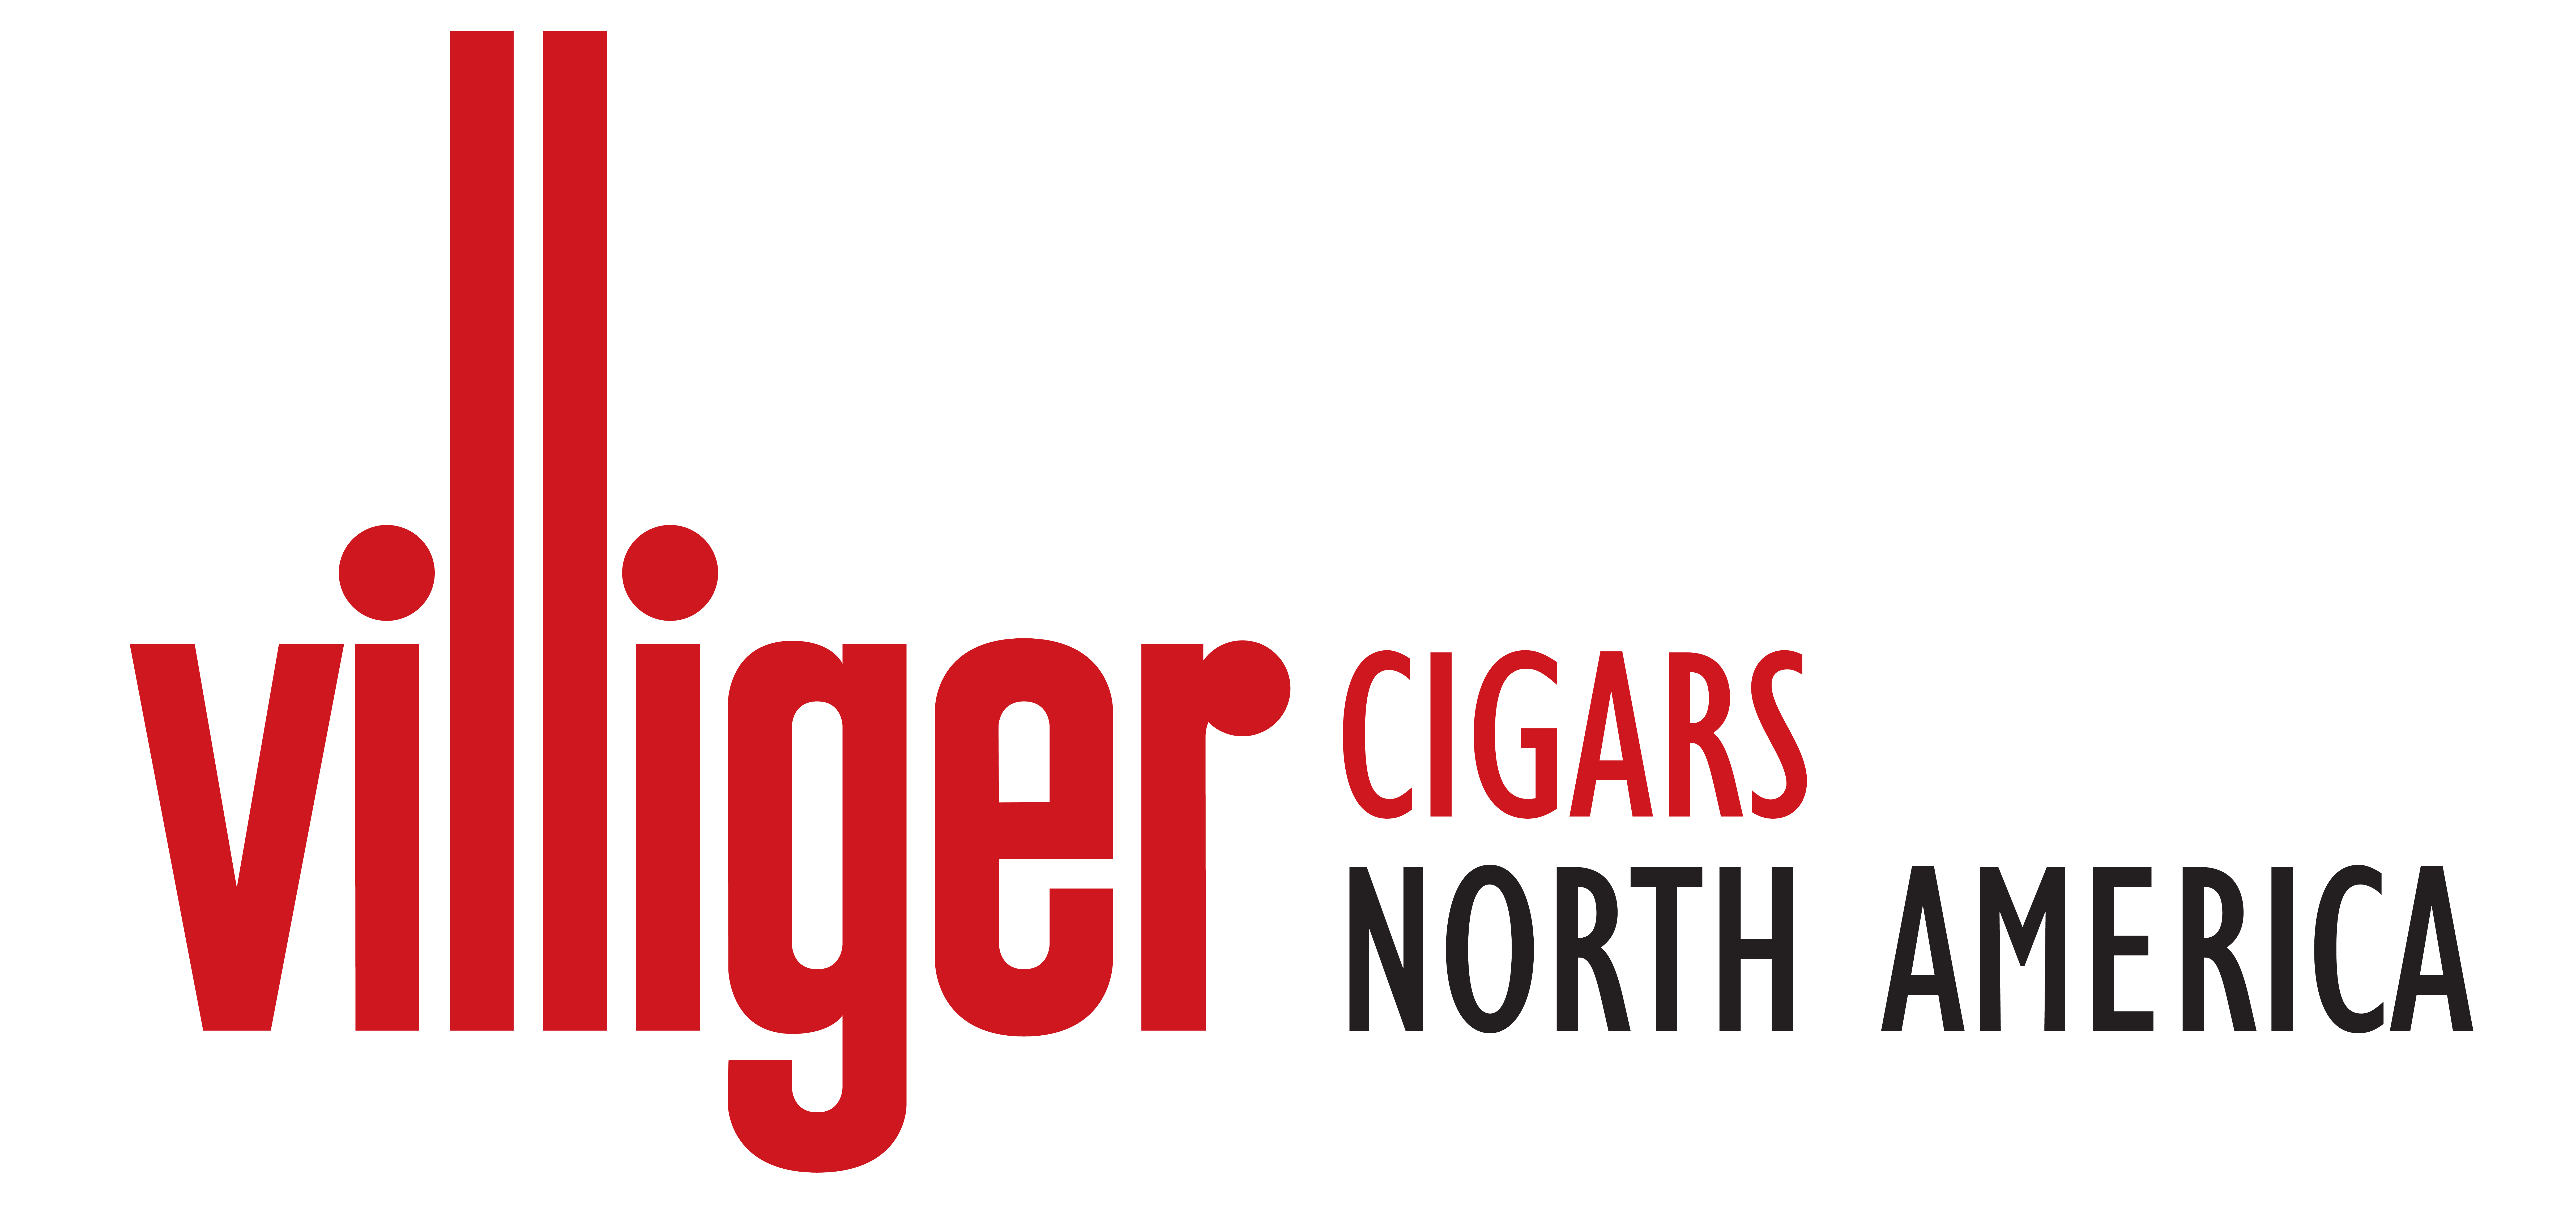 villiger_of-north_america